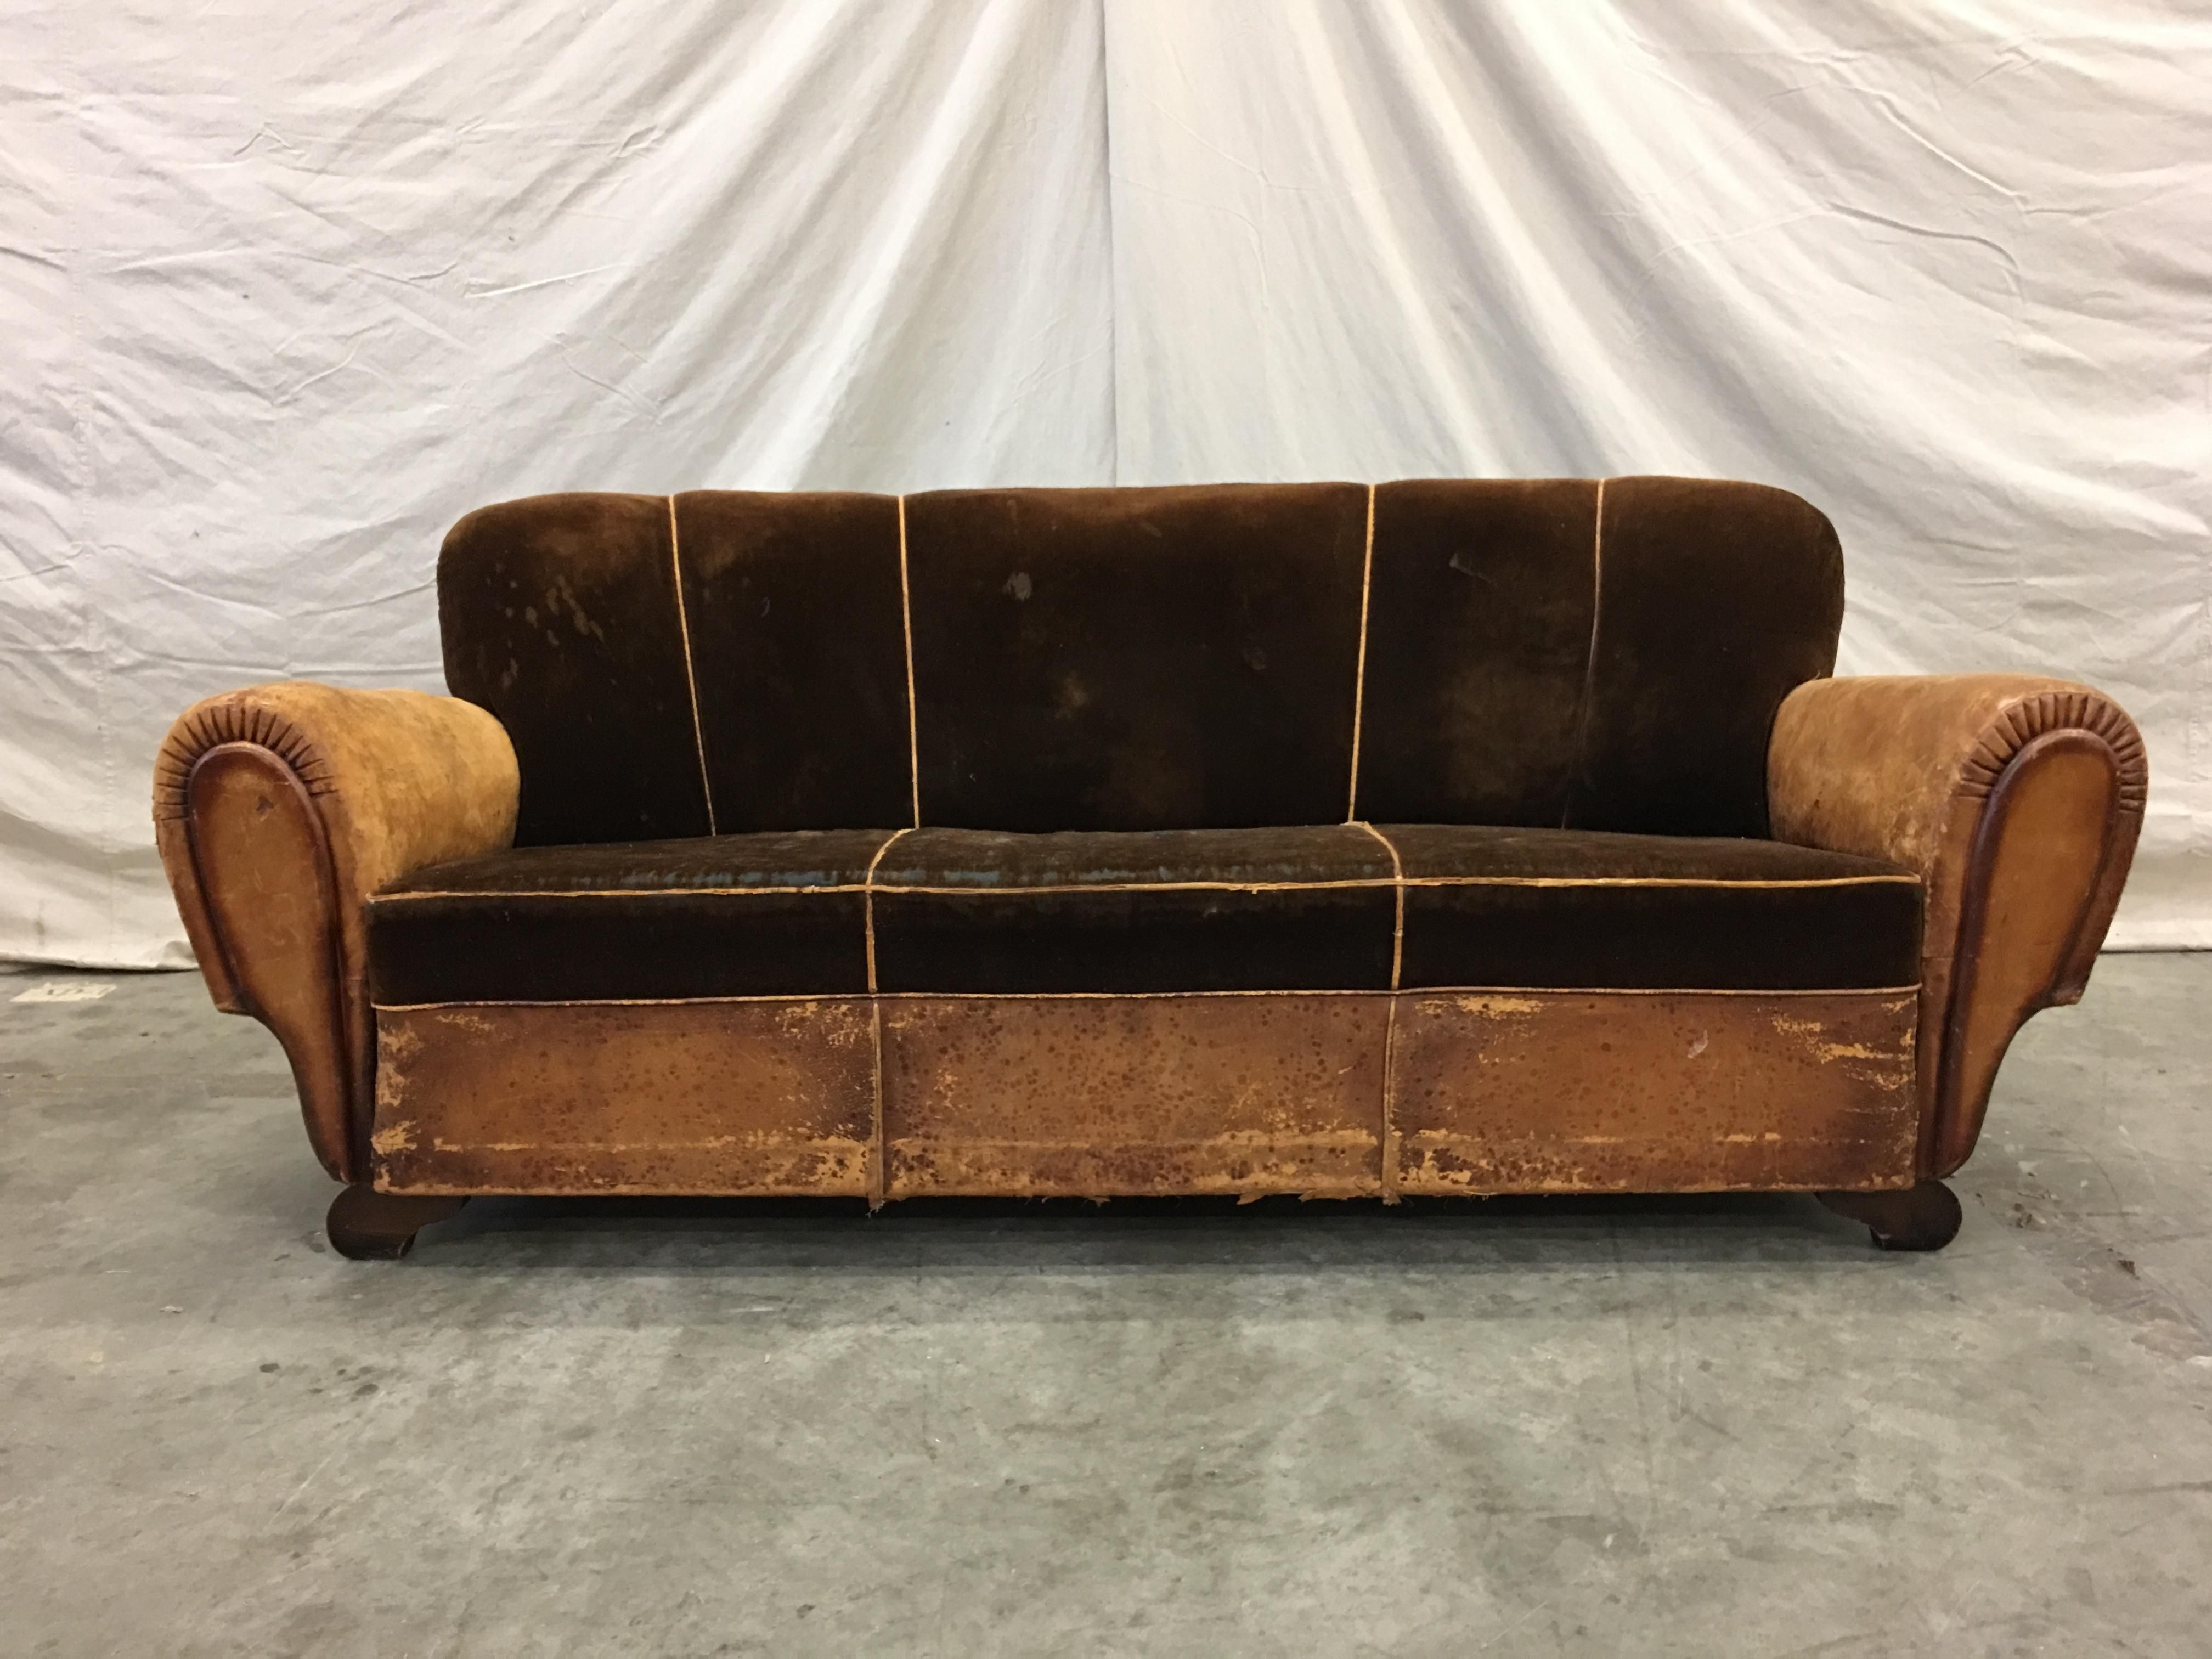 Wondrous 1930S French Art Deco Leather And Mohair Sofa And Armchair Gmtry Best Dining Table And Chair Ideas Images Gmtryco